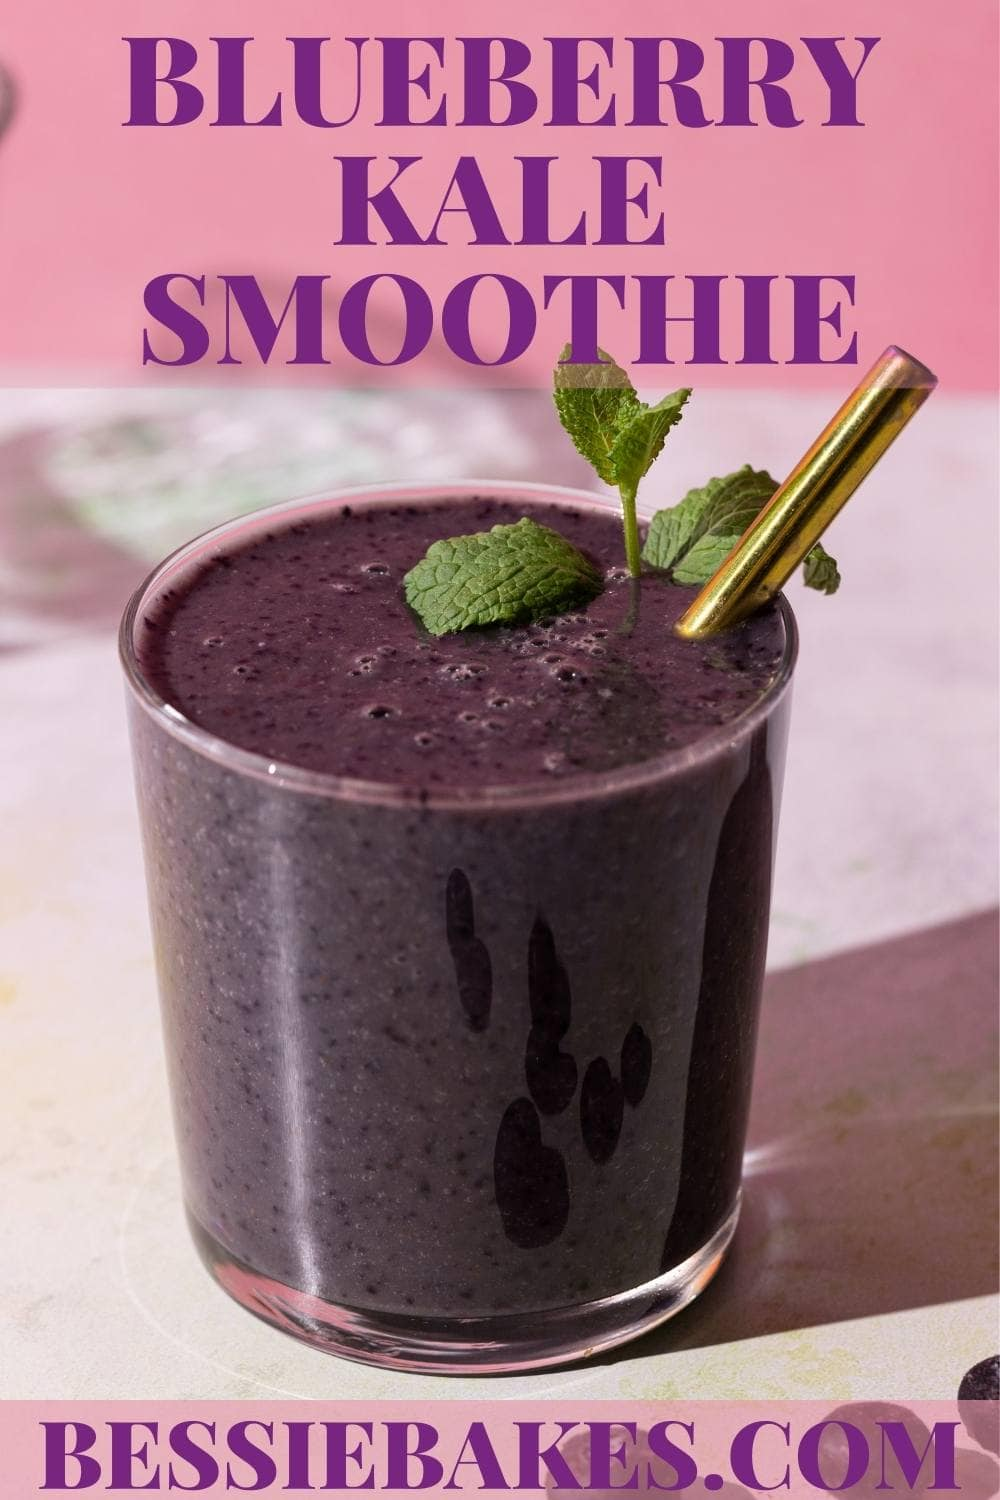 This smoothie will have you feeling super in just a few sips -- and we have blueberries to thank for that! The antioxidant-rich superfood is not only a delicious addition to this drink, but also brings a beautiful, vibrant purple perfect for sneaking some kale into your morning routine. via @bessiebakes